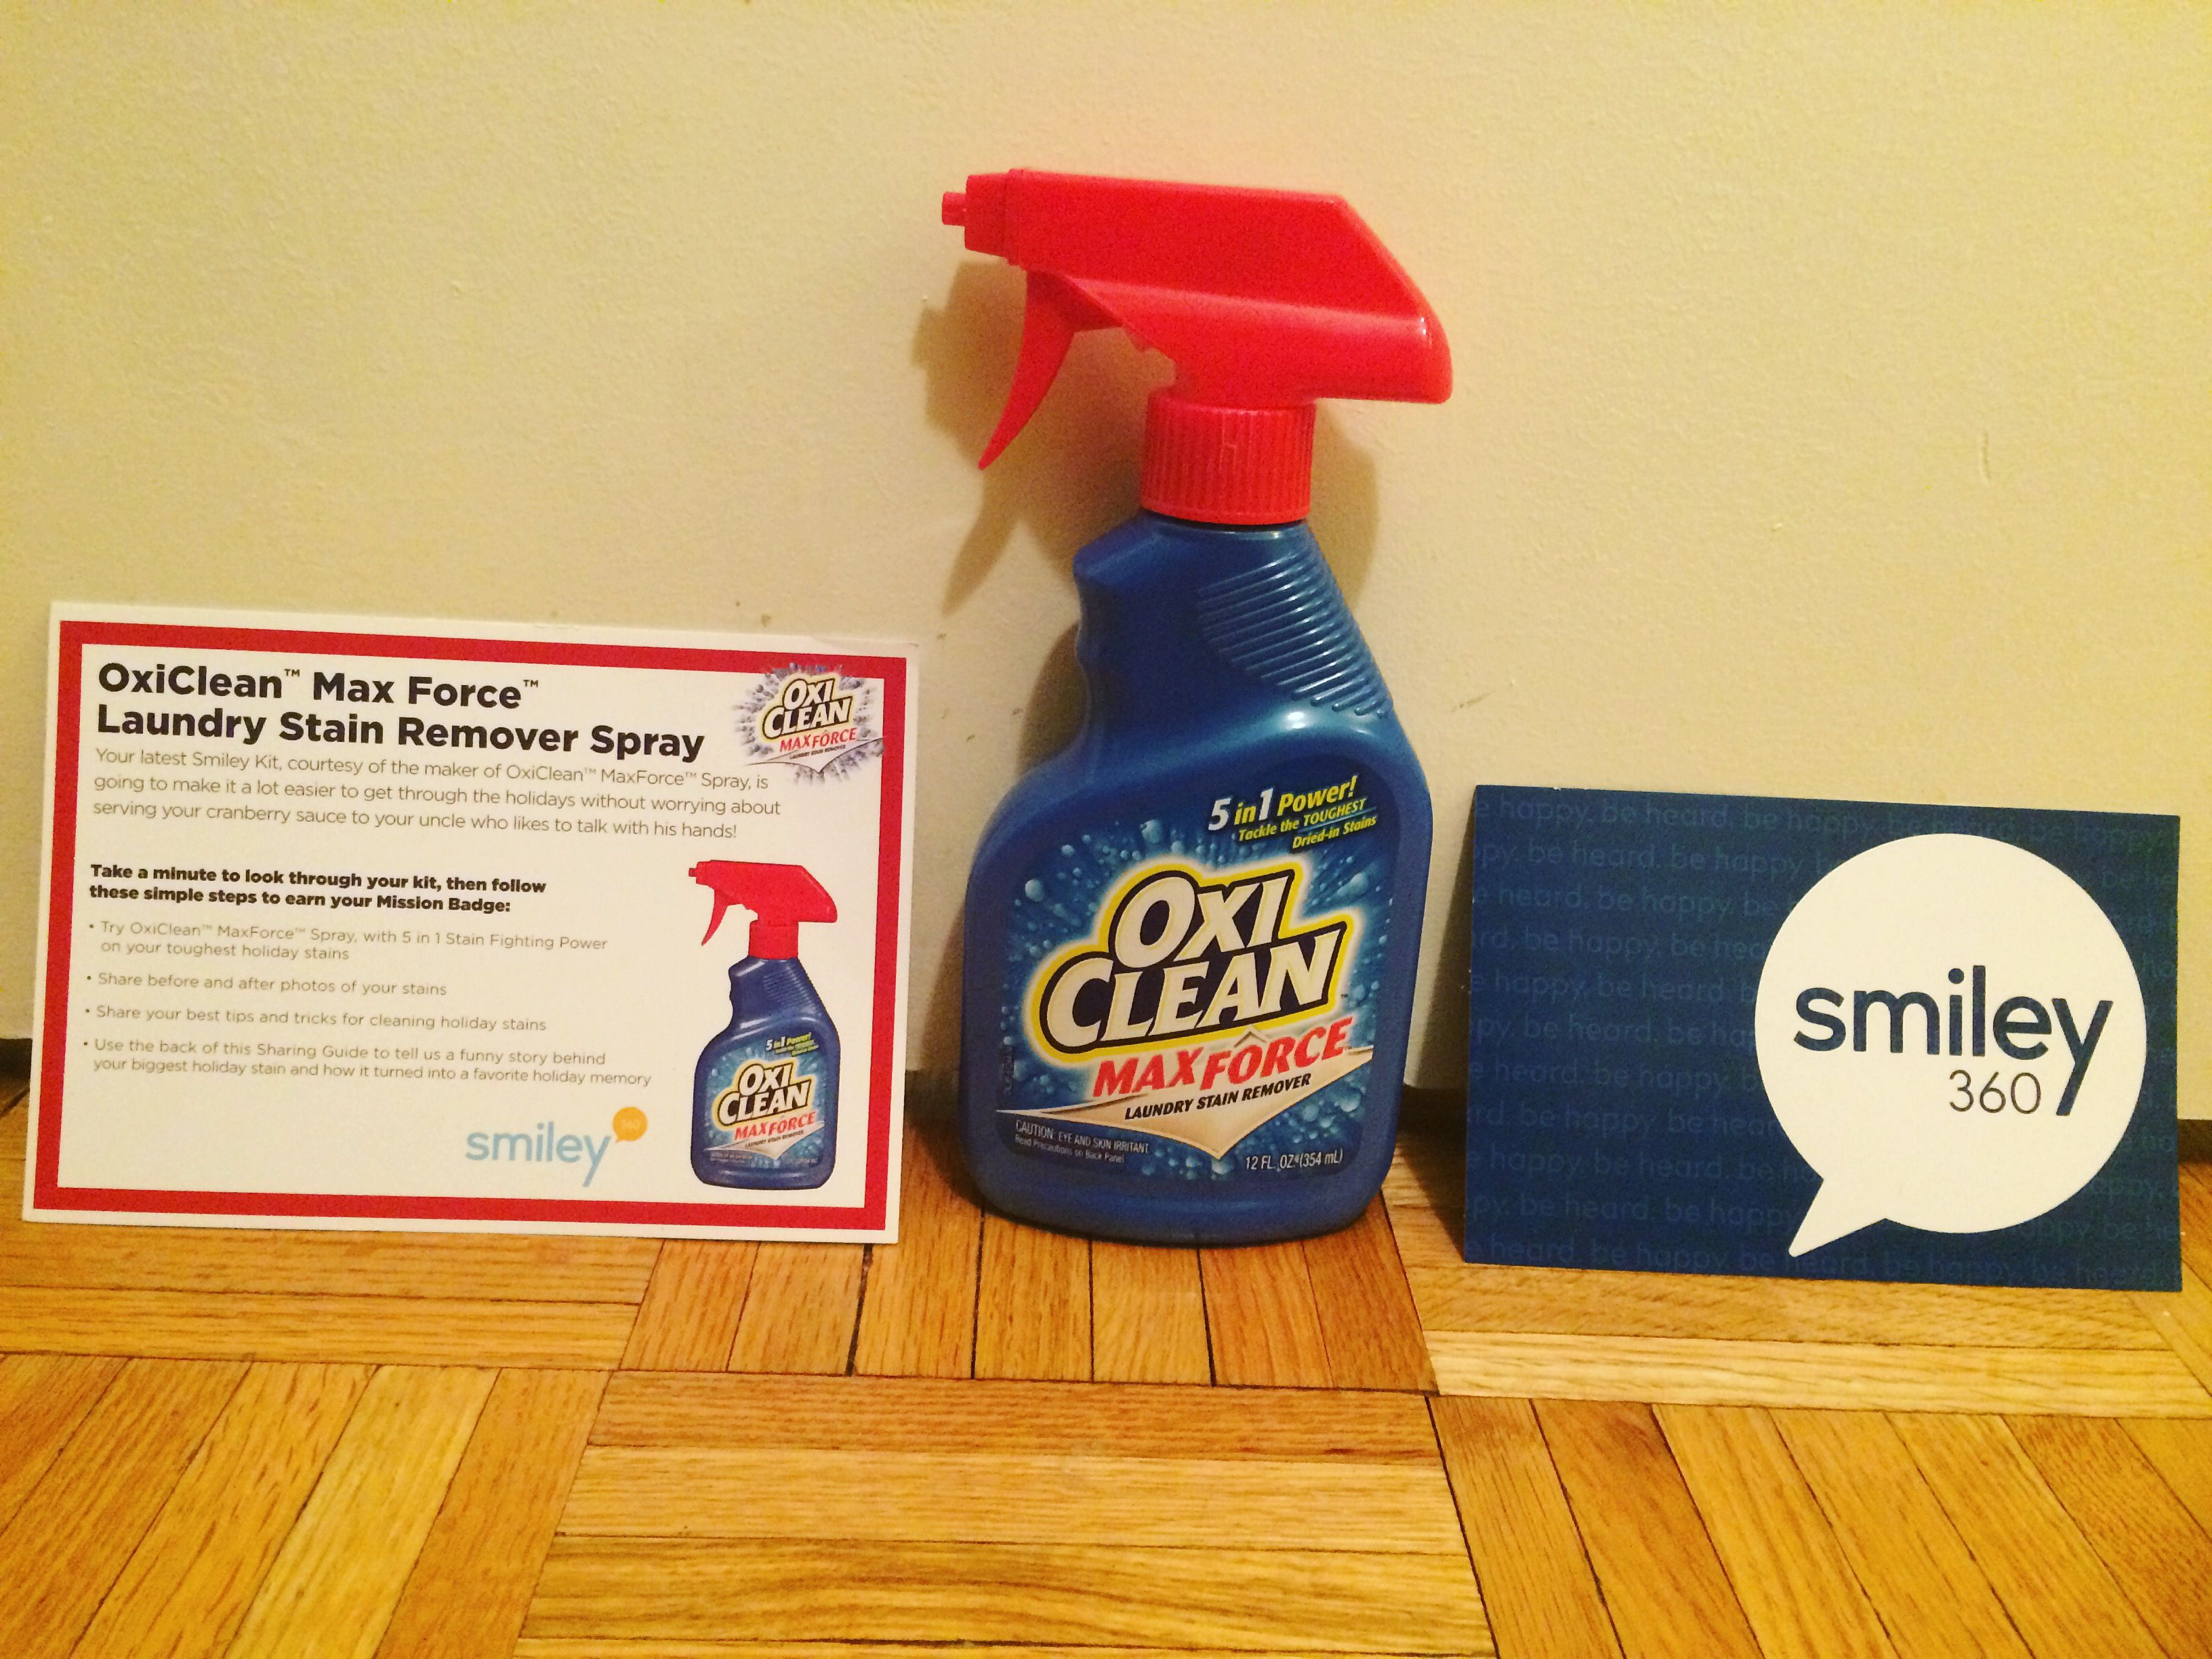 Freesample Oxiclean Max Force Laundry Stain Remover Spray Via